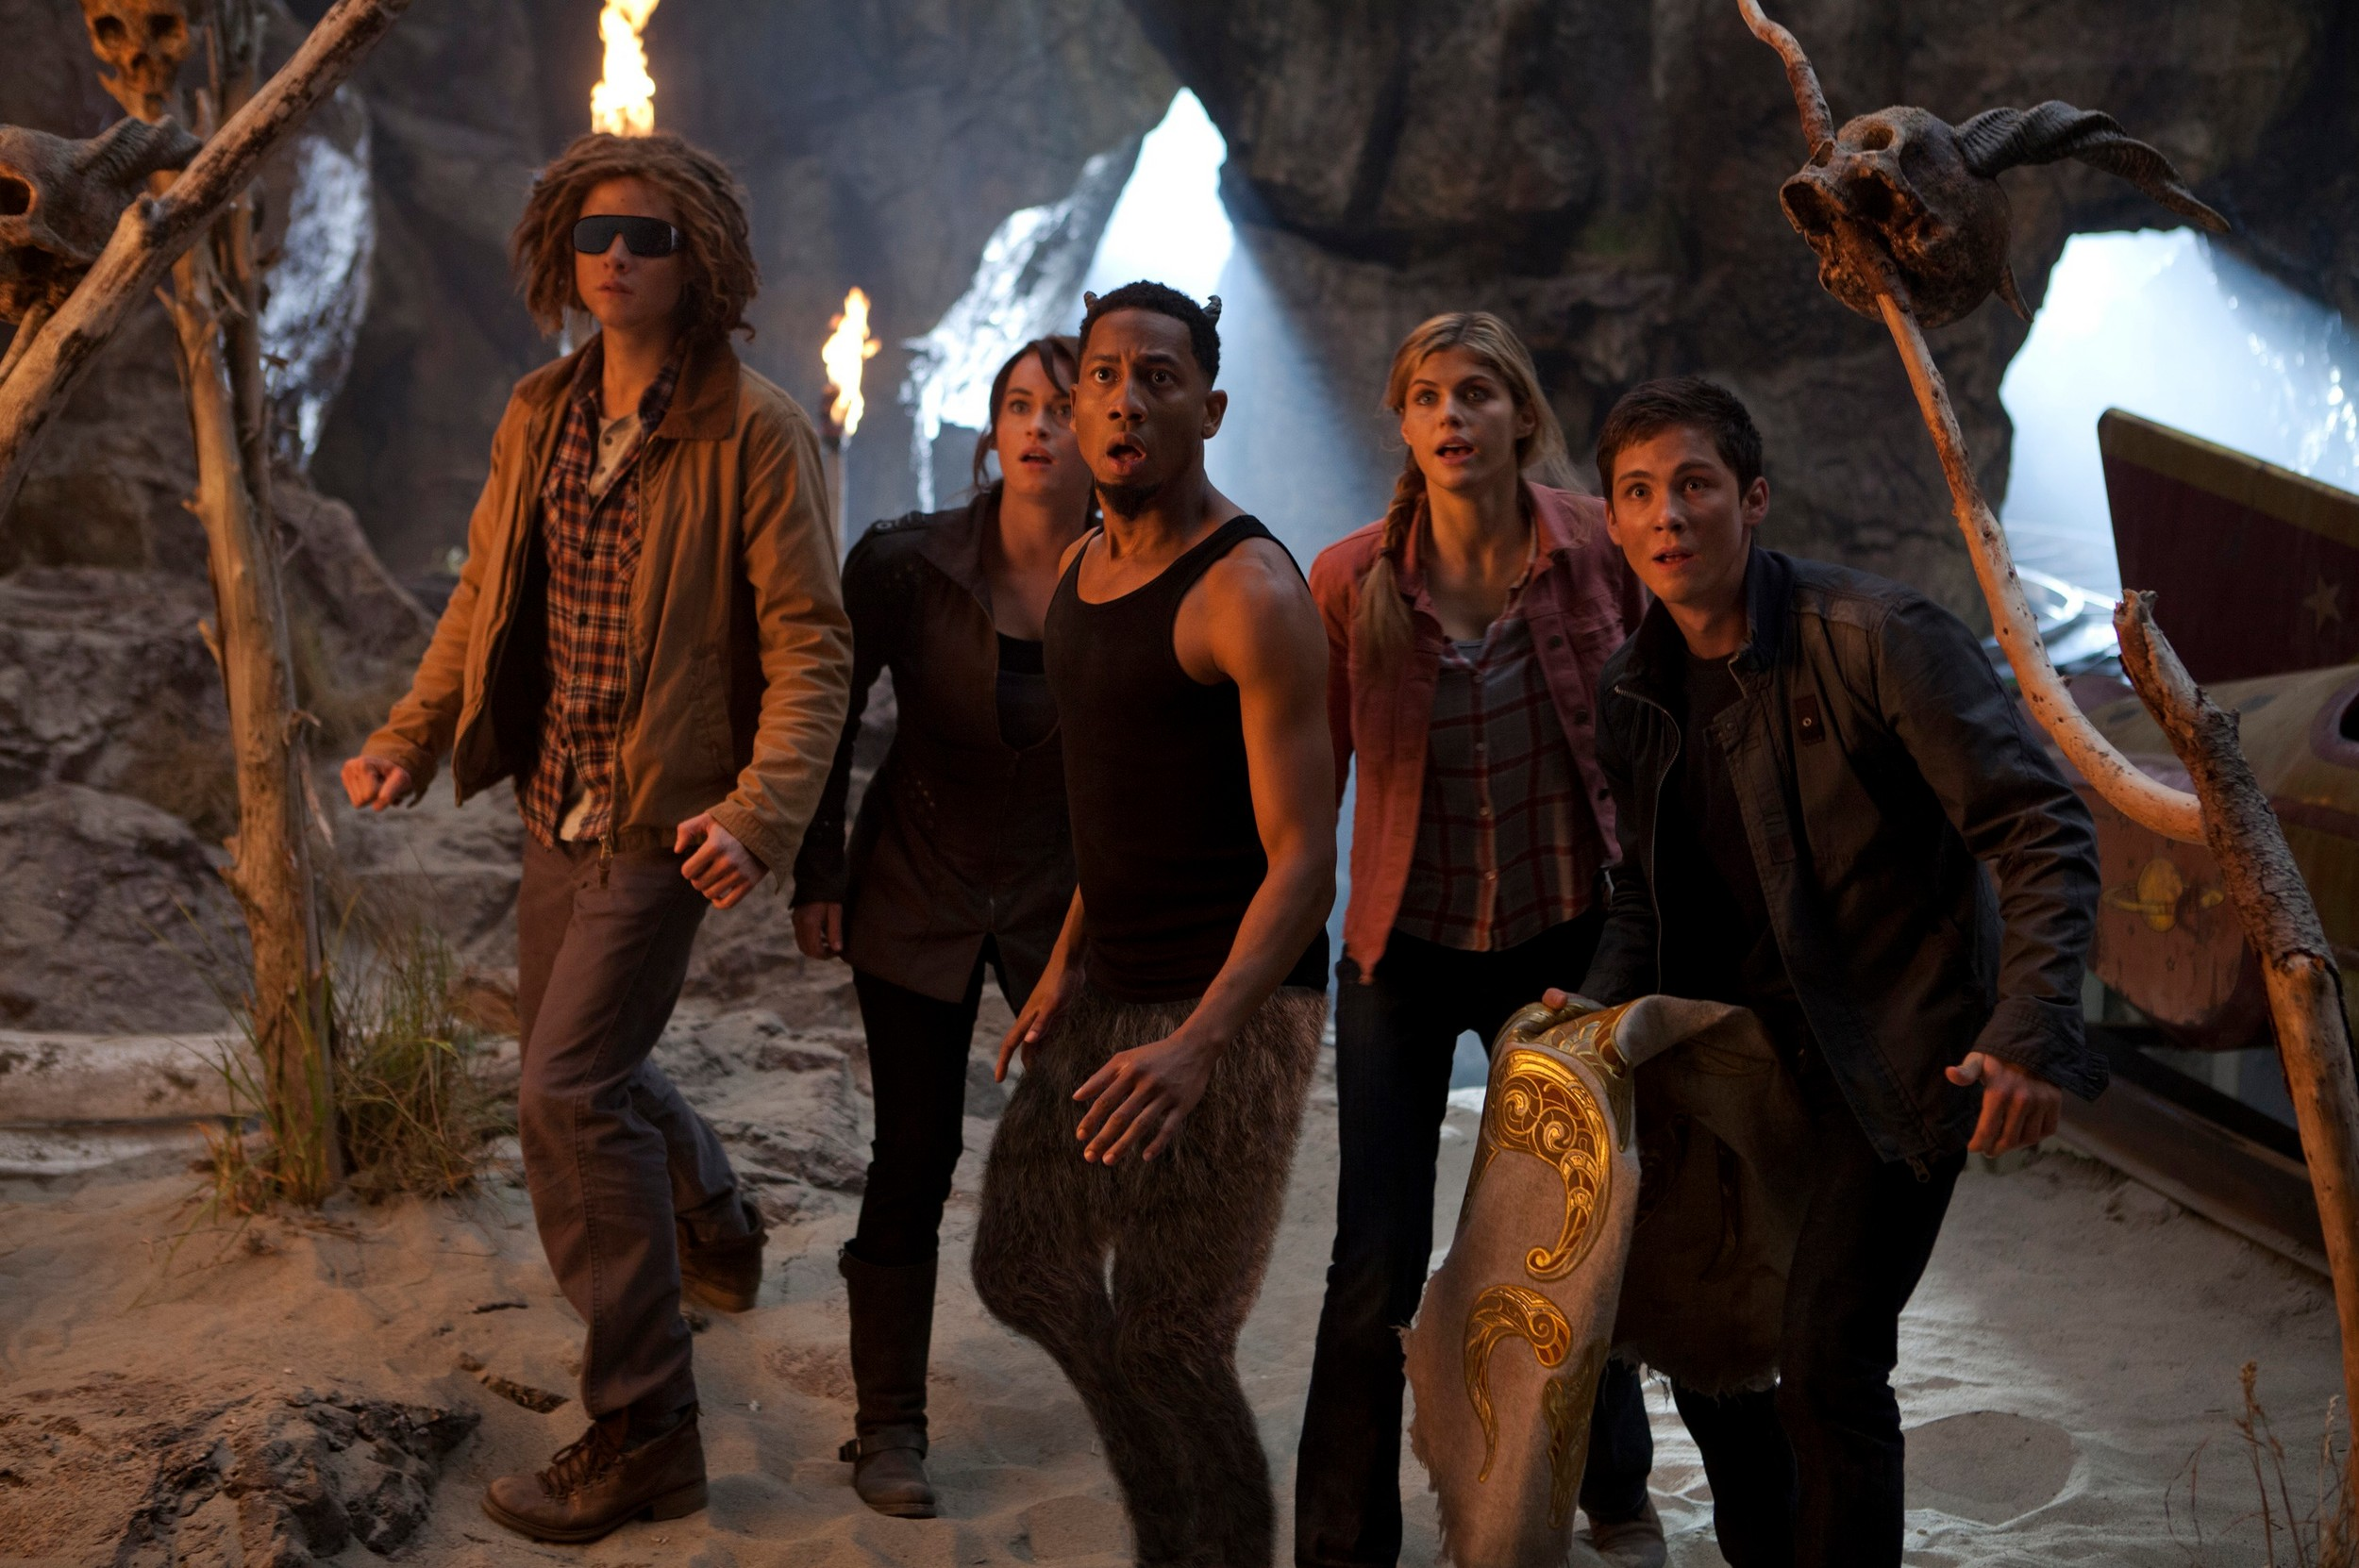 Tyson (Douglas Smith, from left), Clarisse (Leven Rambin), Grover (Brandon T. Jackson), Annabeth (Alexandra Daddario) and Percy (Logan Lerman) are shocked by their latest discovery.